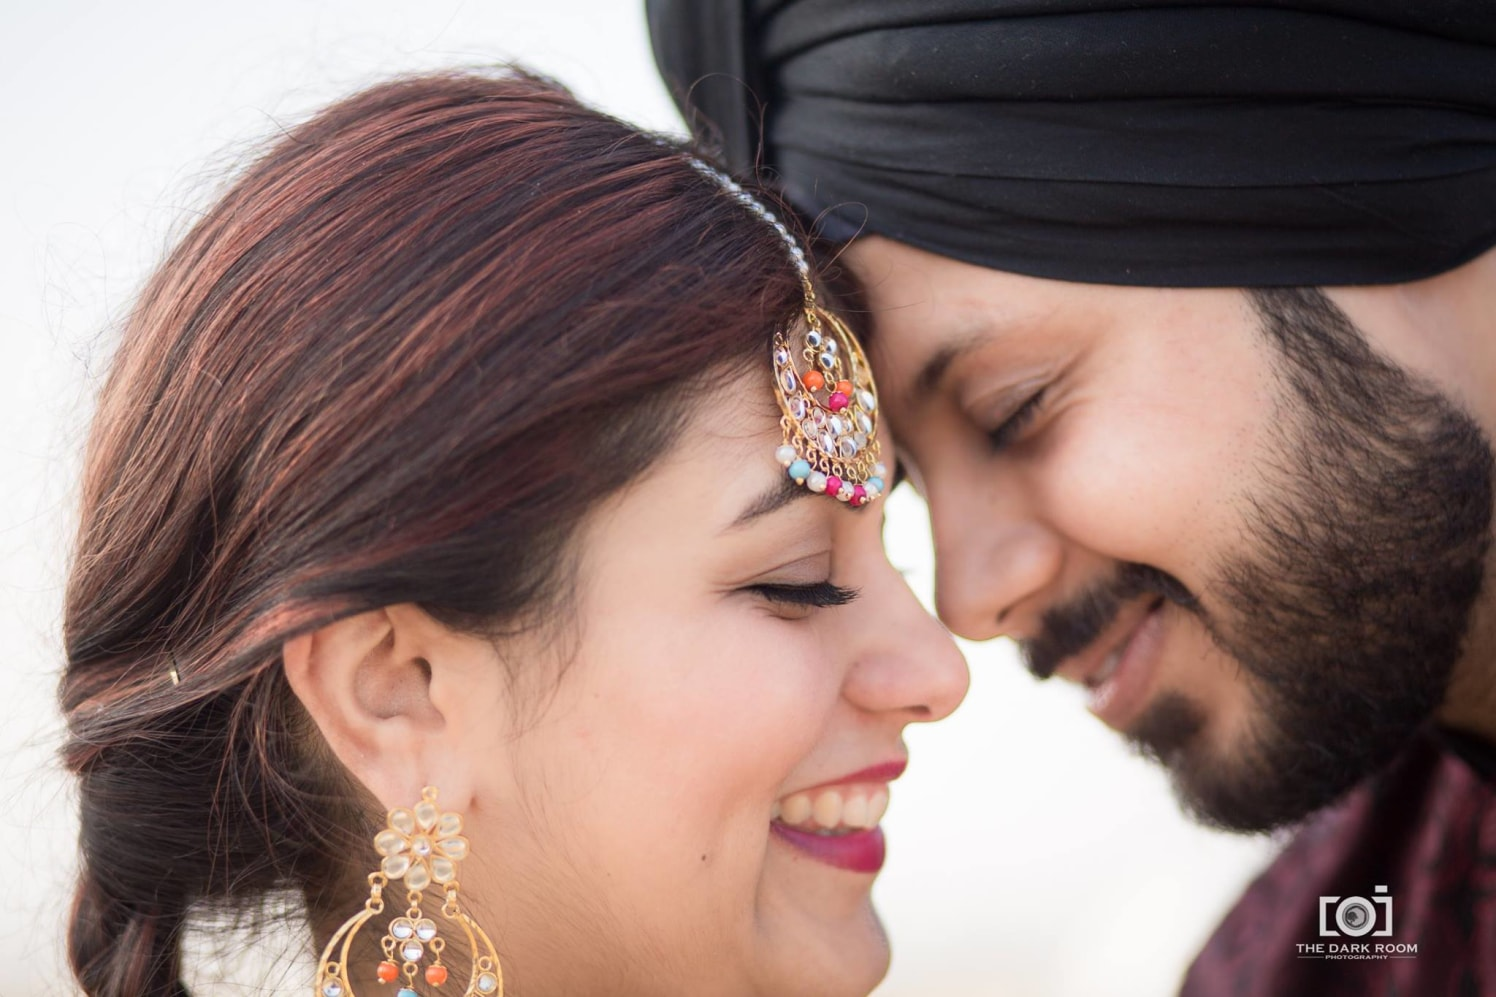 Colourful head adjunct by The Dark Room Photography Wedding-photography | Weddings Photos & Ideas